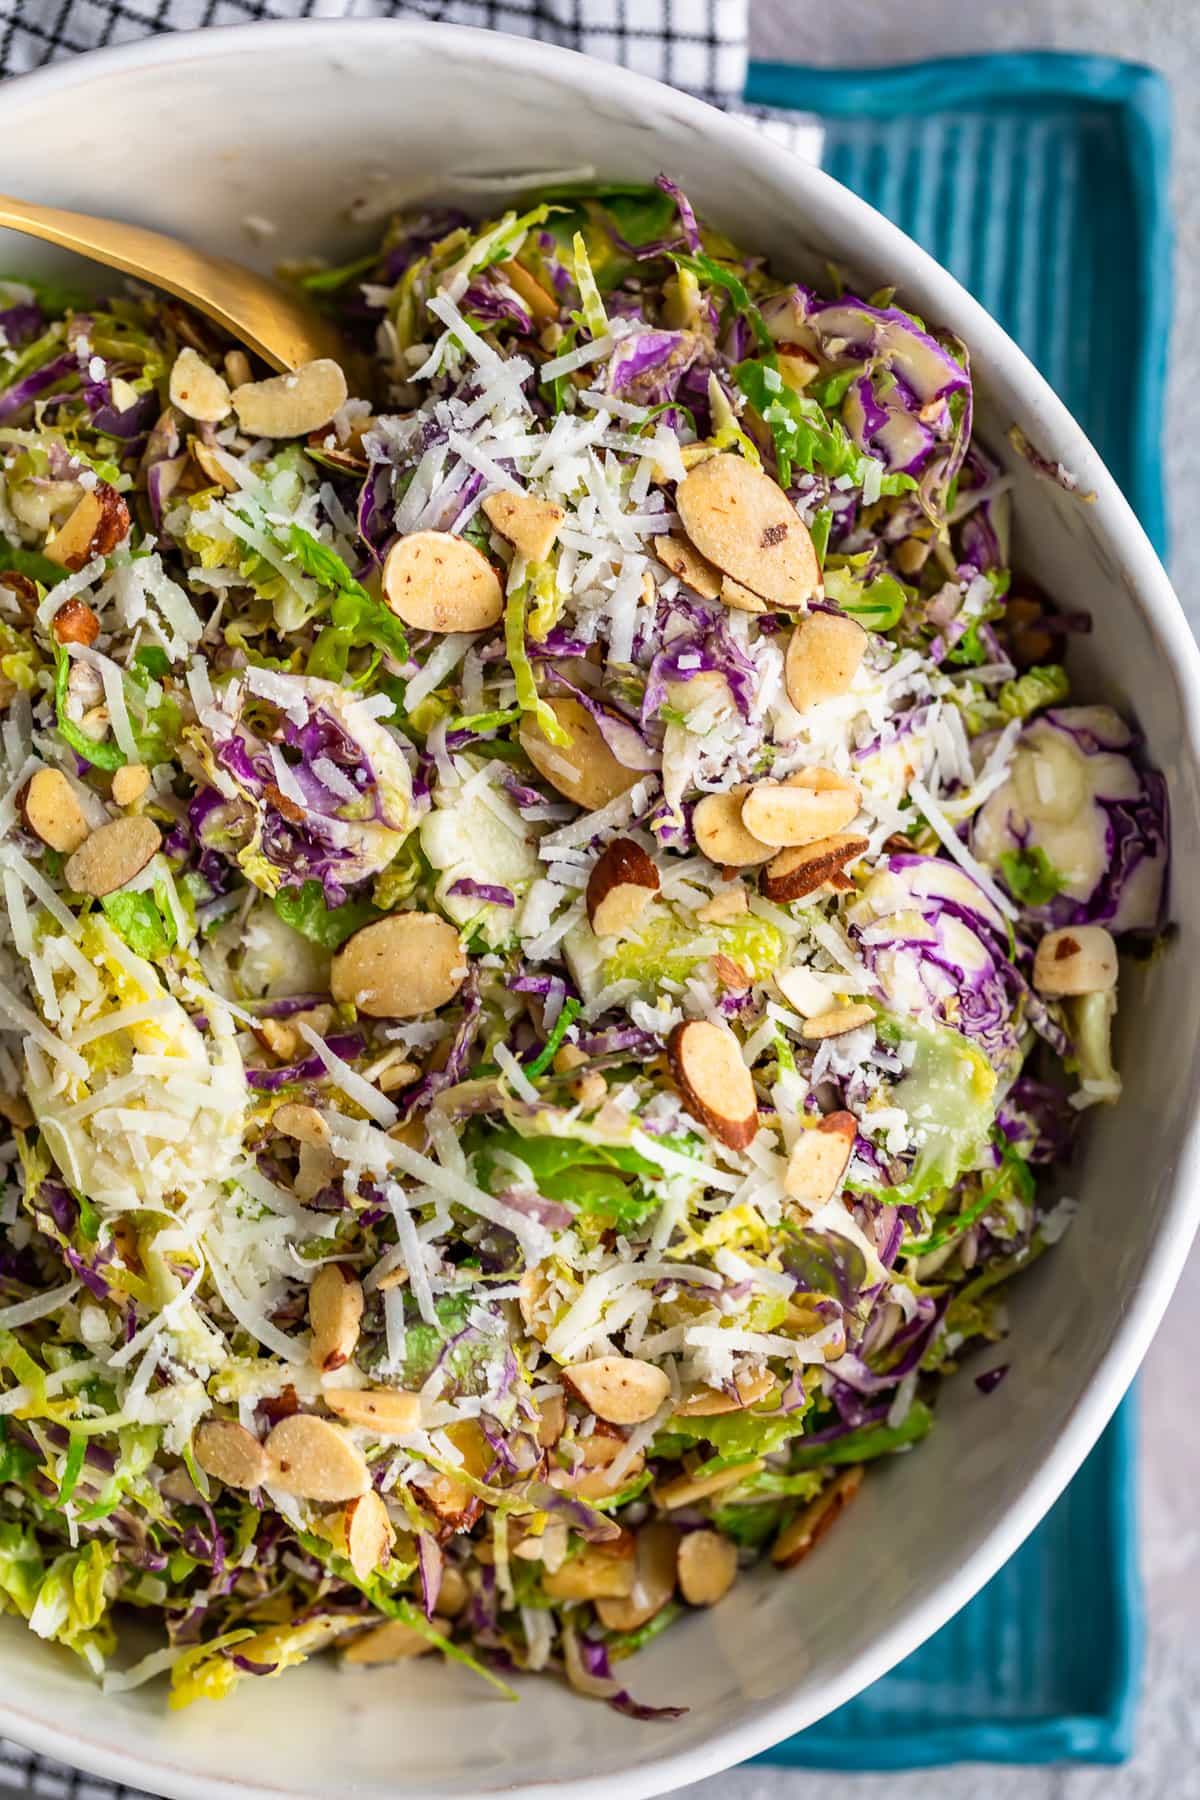 almonds, cheese, and shaved brussels sprouts in a bowl